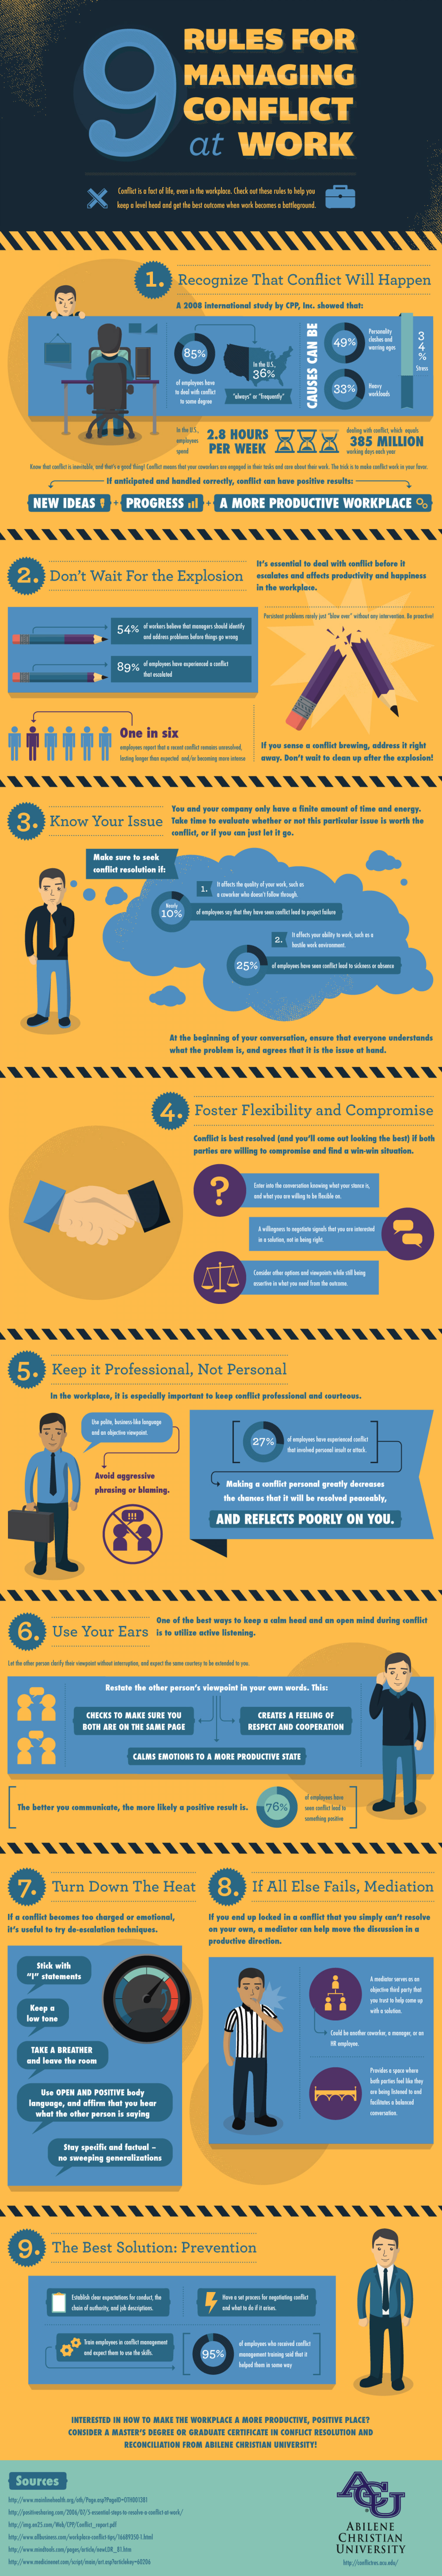 9 Rules for Managing Conflict at Work Infographic